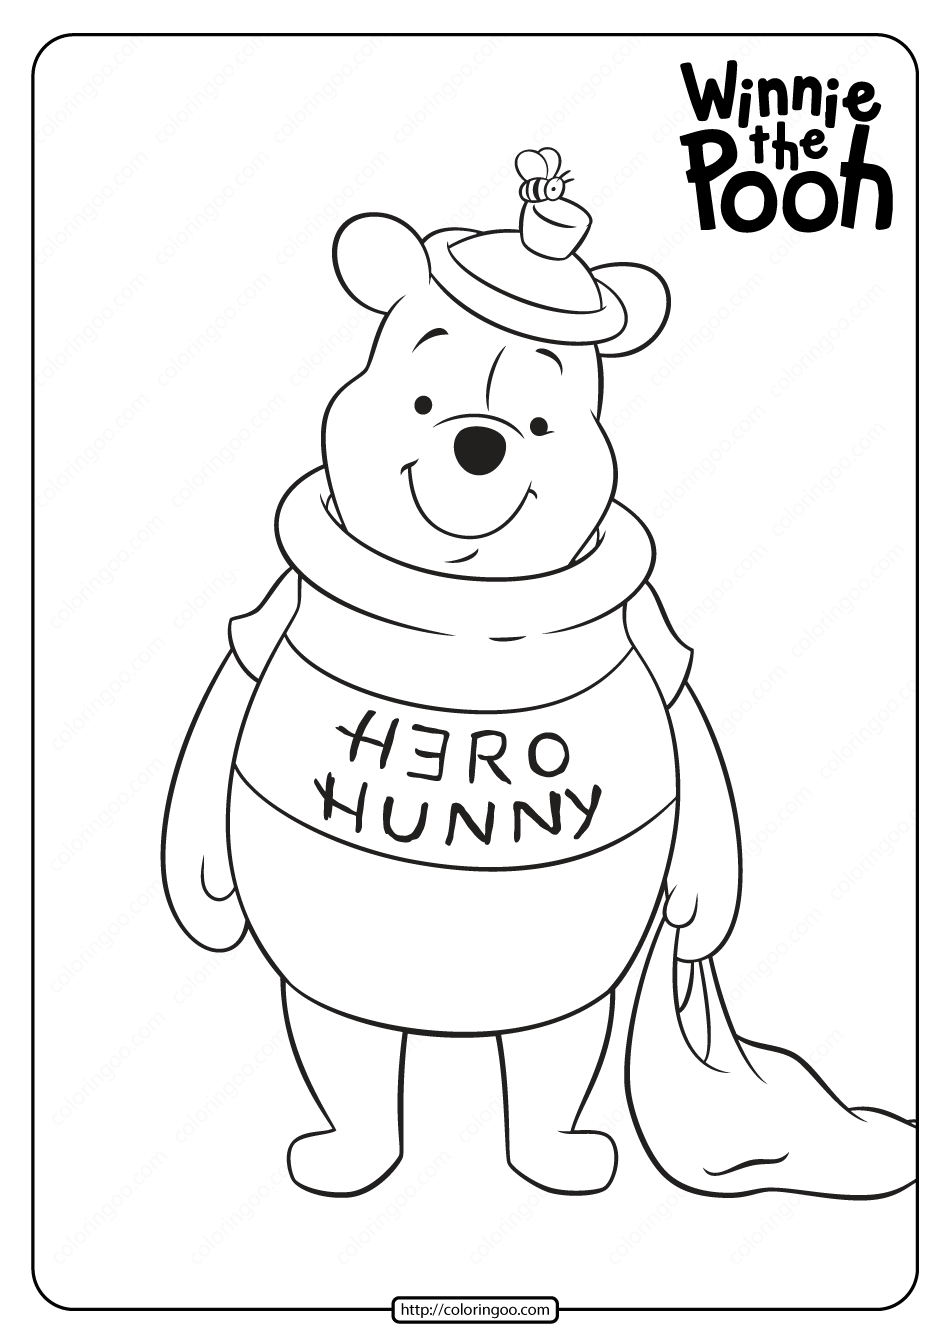 Printable Winnie the Pooh Halloween Coloring Page